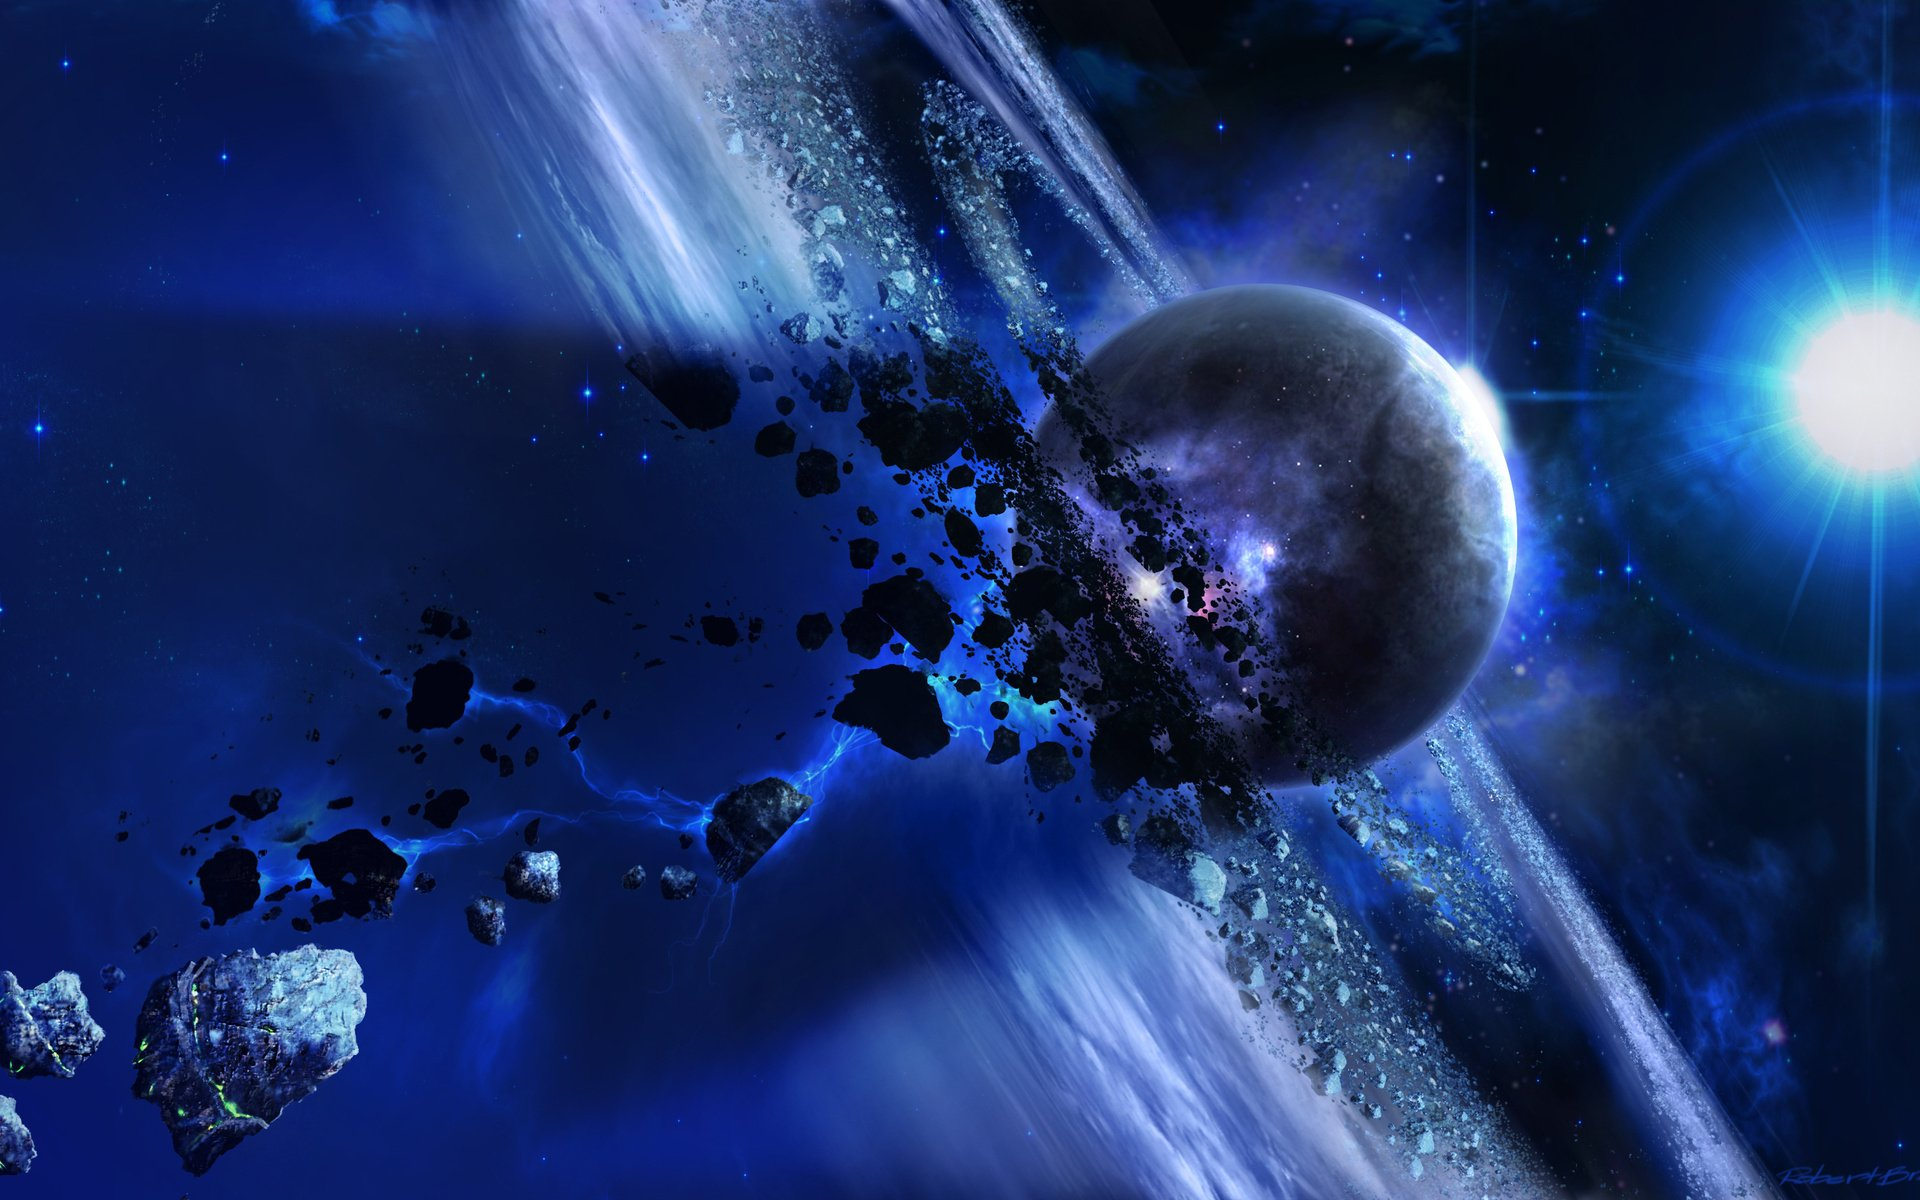 Amazing space 3D Art Wallpaper HD 2014 for iPhone Android Desktop 1920x1200